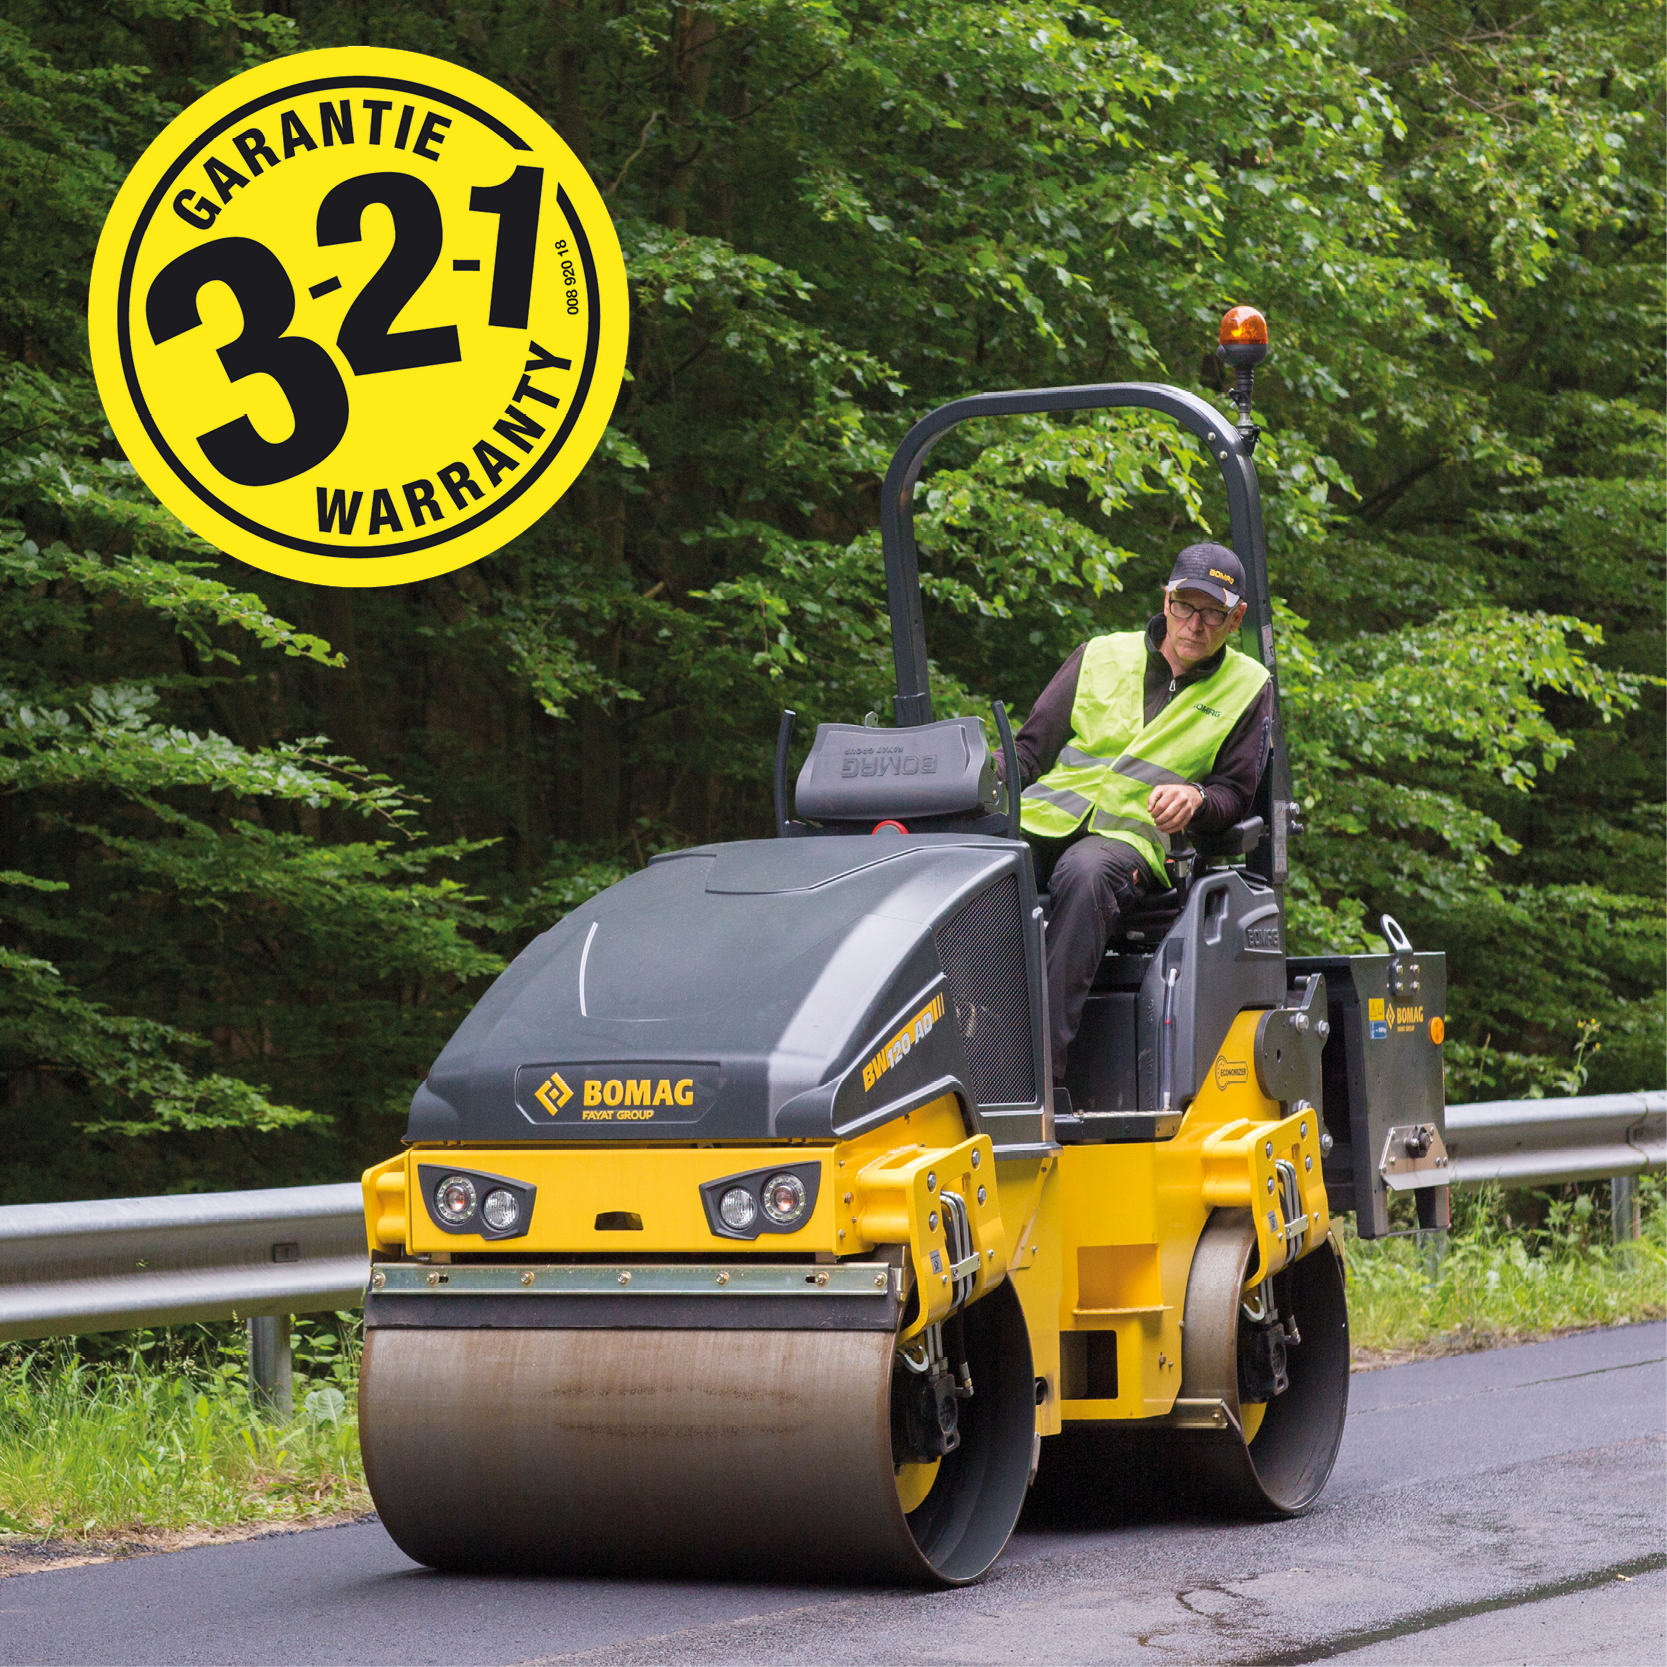 BOMAG BW120 Roller with 3-2-1 warranty